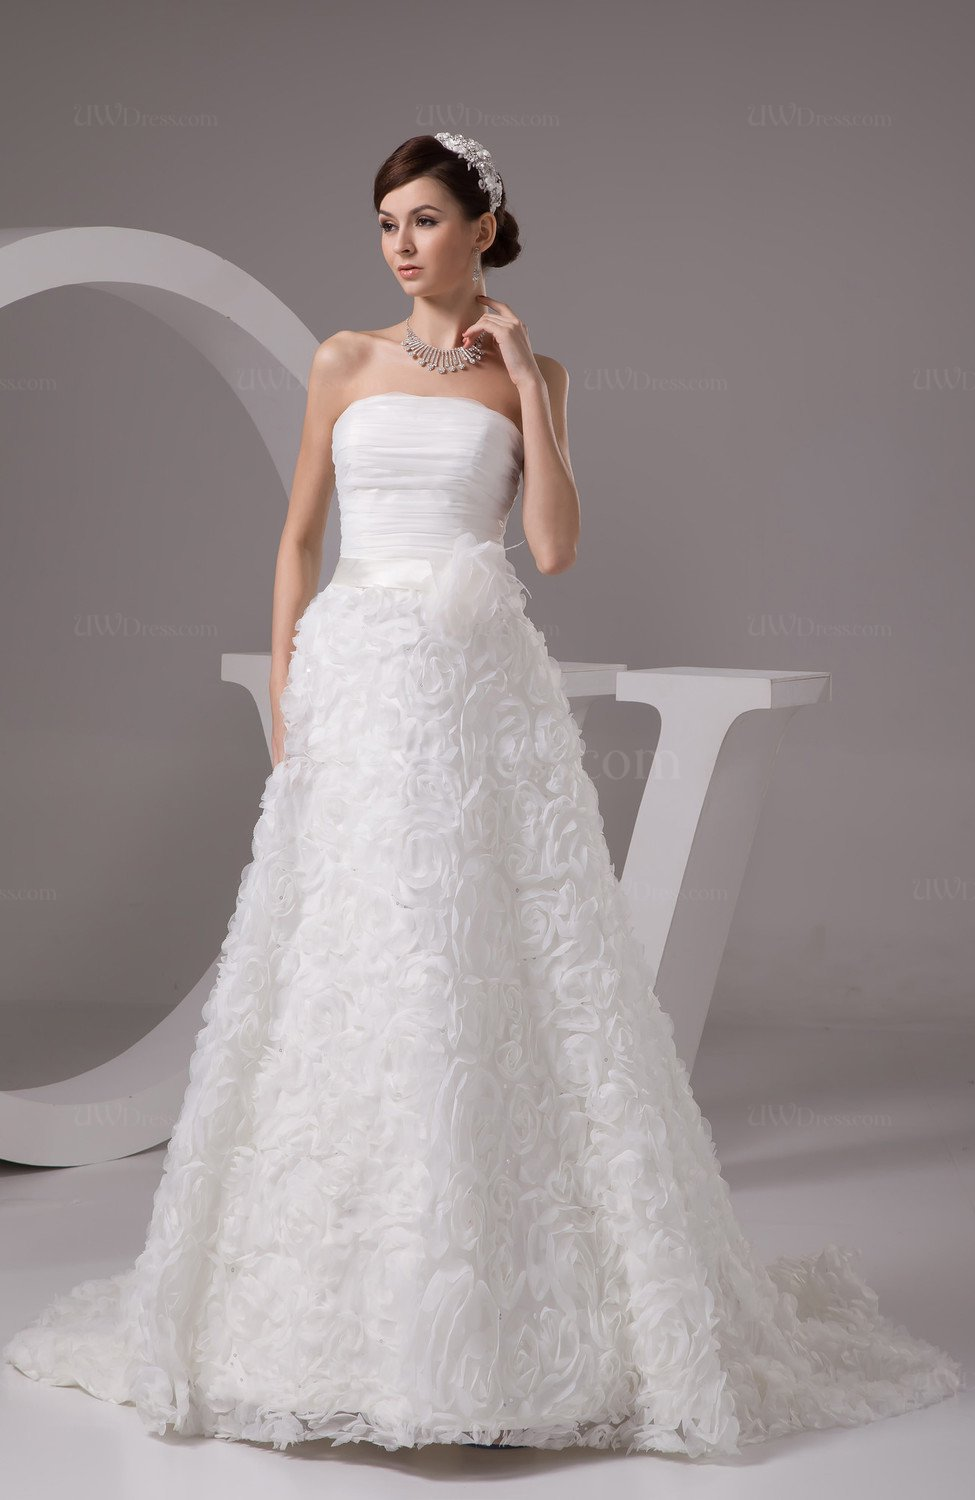 Allure bridal gowns inexpensive disney princess spring for Simple inexpensive wedding dresses